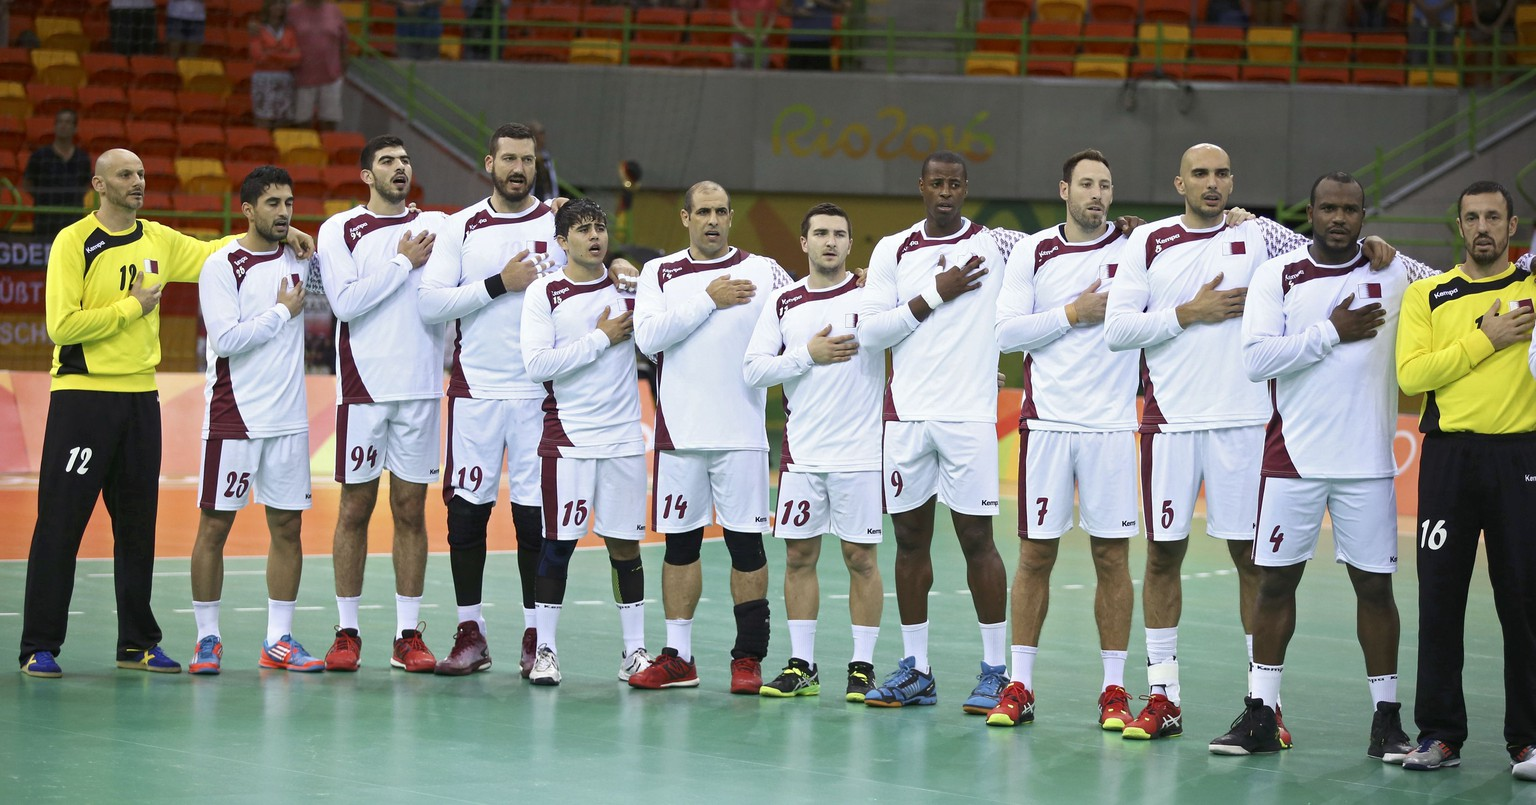 2016 Rio Olympics - Handball - Preliminary - Men's Preliminary Group A Qatar v France - Future Arena - Rio de Janeiro, Brazil - 09/08/2016. Qatar's players sing the national anthem before the match. REUTERS/Marko Djurica FOR EDITORIAL USE ONLY. NOT FOR SALE FOR MARKETING OR ADVERTISING CAMPAIGNS.